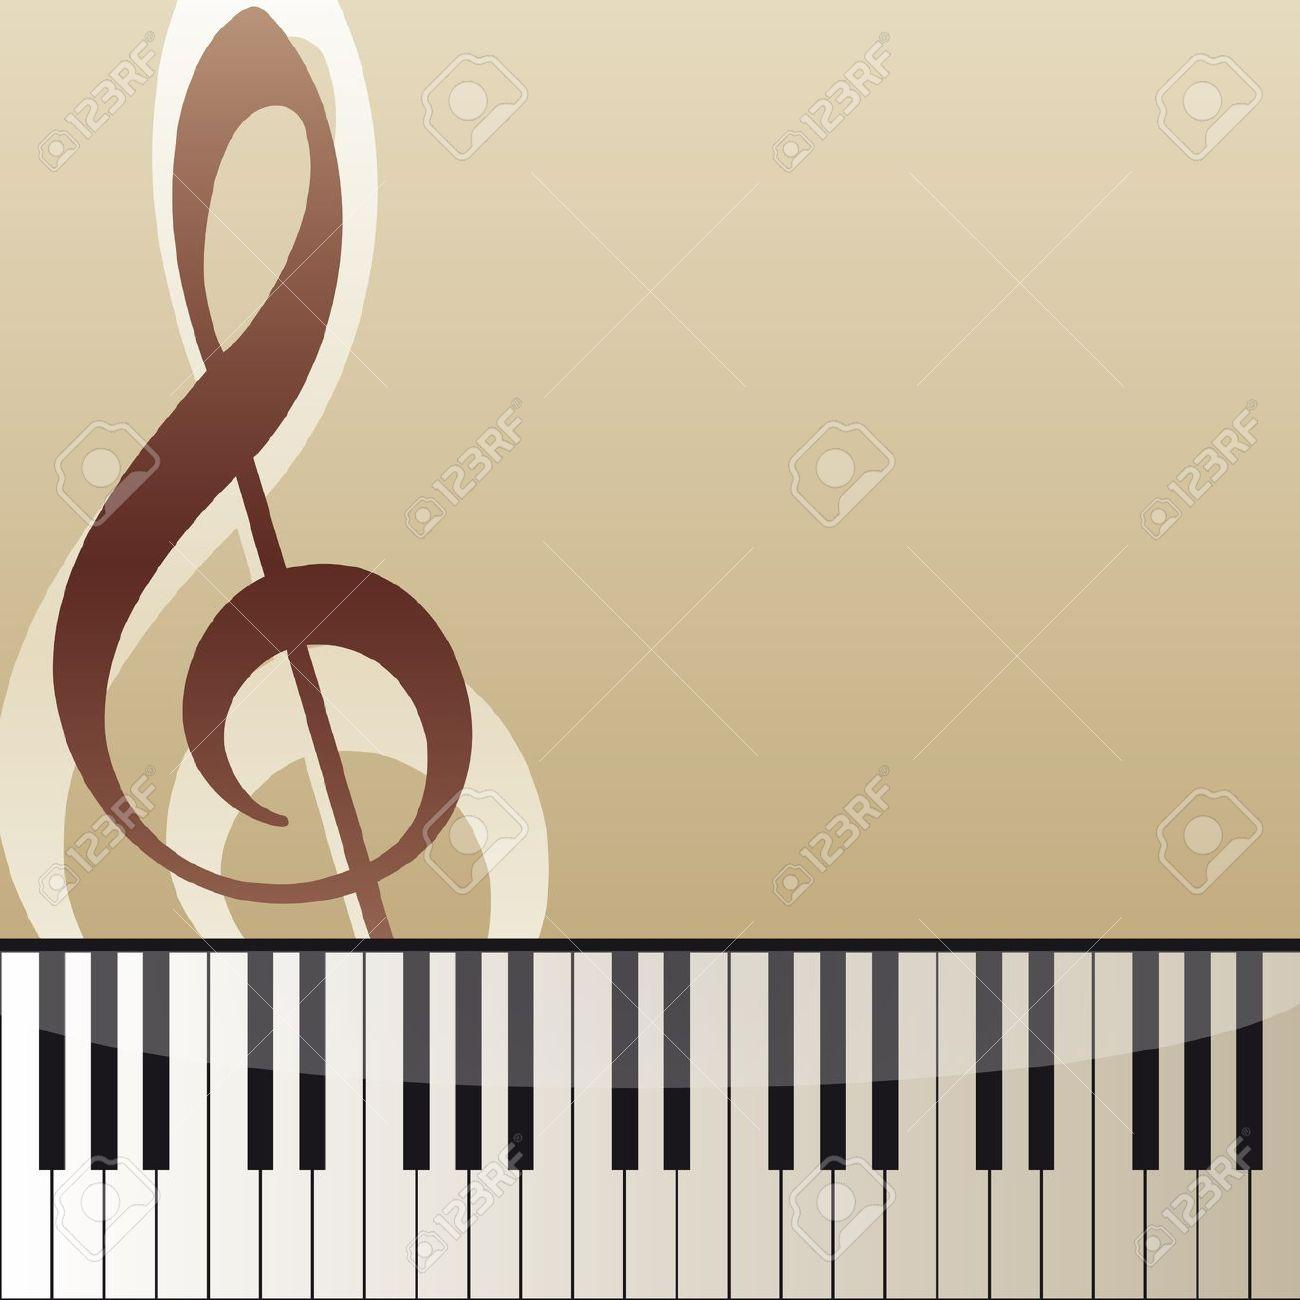 piano wallpaper ndash free - photo #33